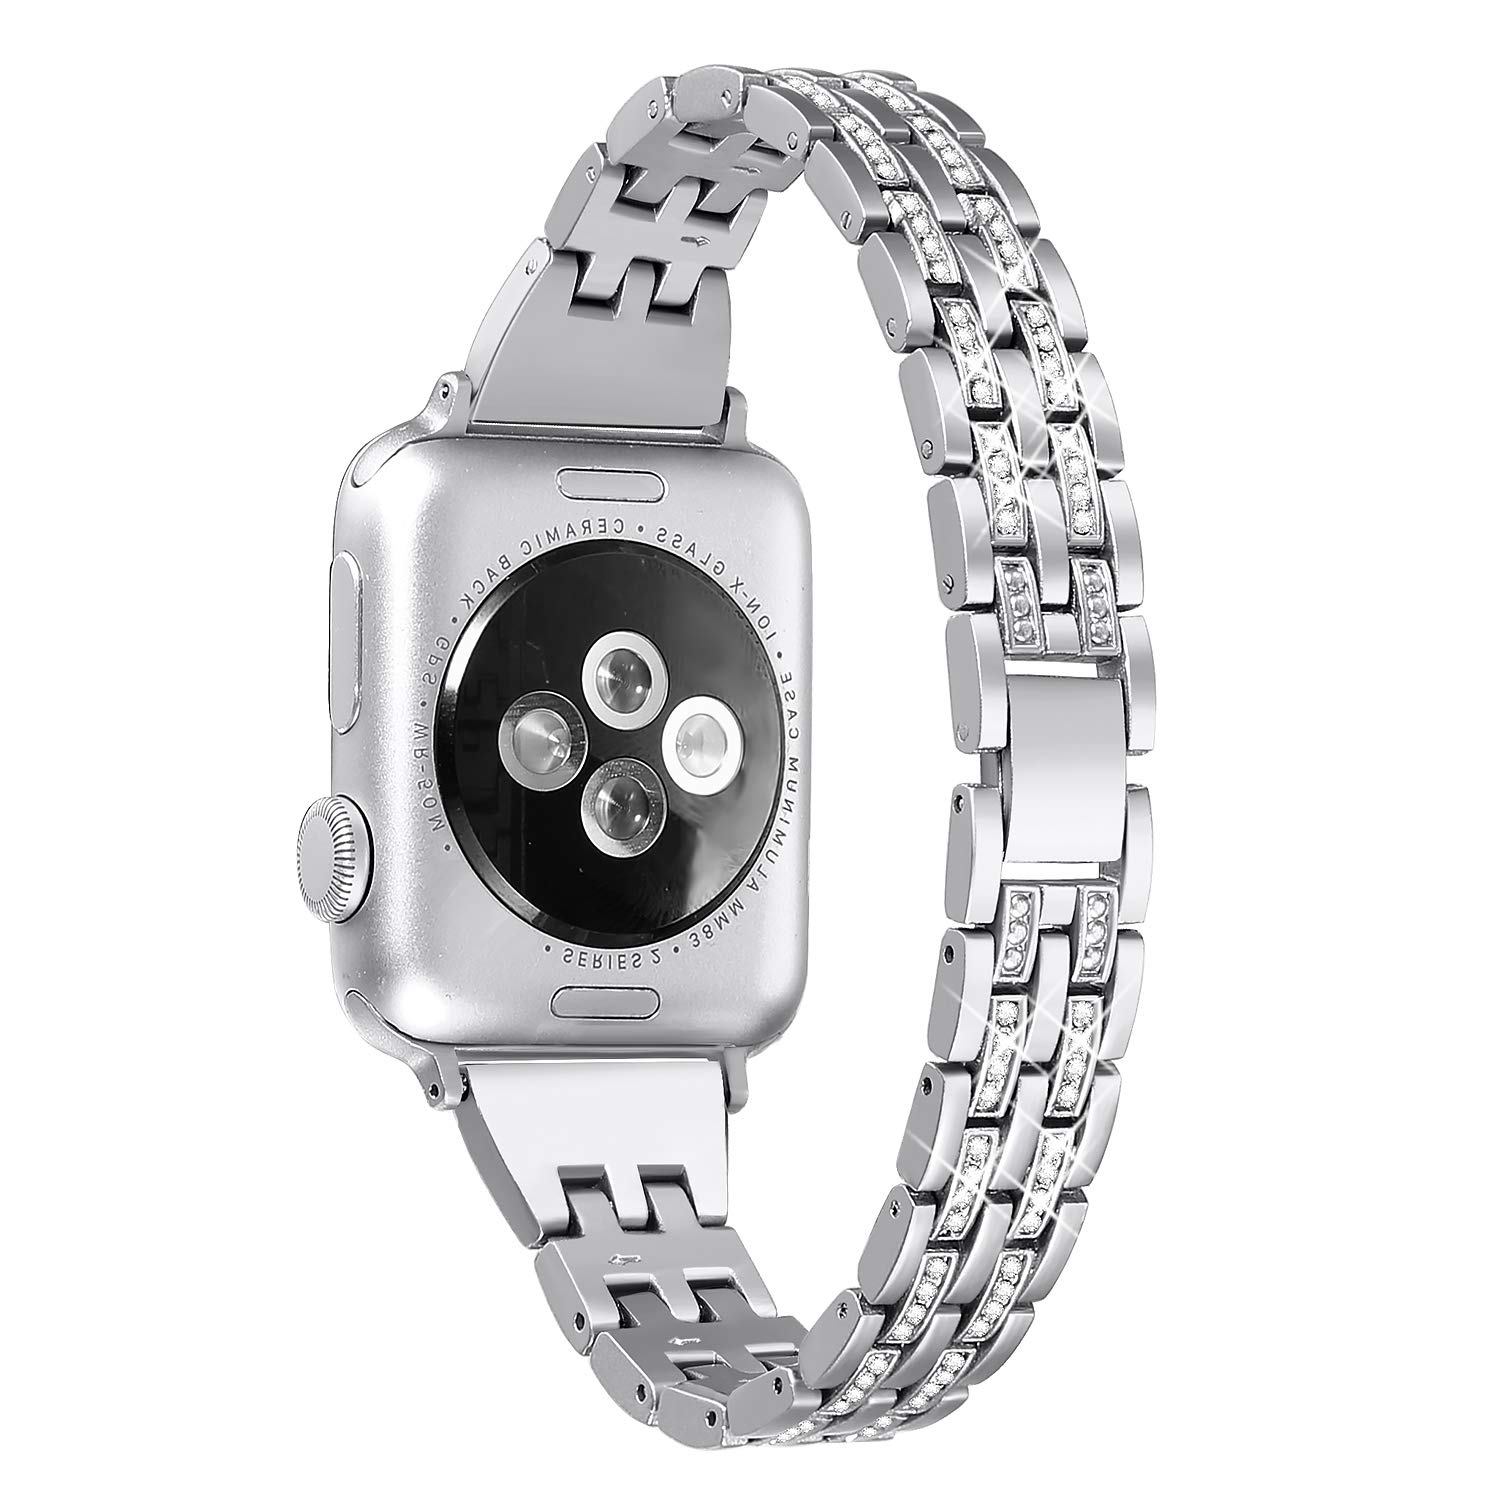 Secbolt Bling Bands Compatible Apple Watch Band 38mm 40mm iWatch Series 5/4/3/2/1 Diamond Rhinestone Metal Jewelry Wristband Strap, Silver by Secbolt